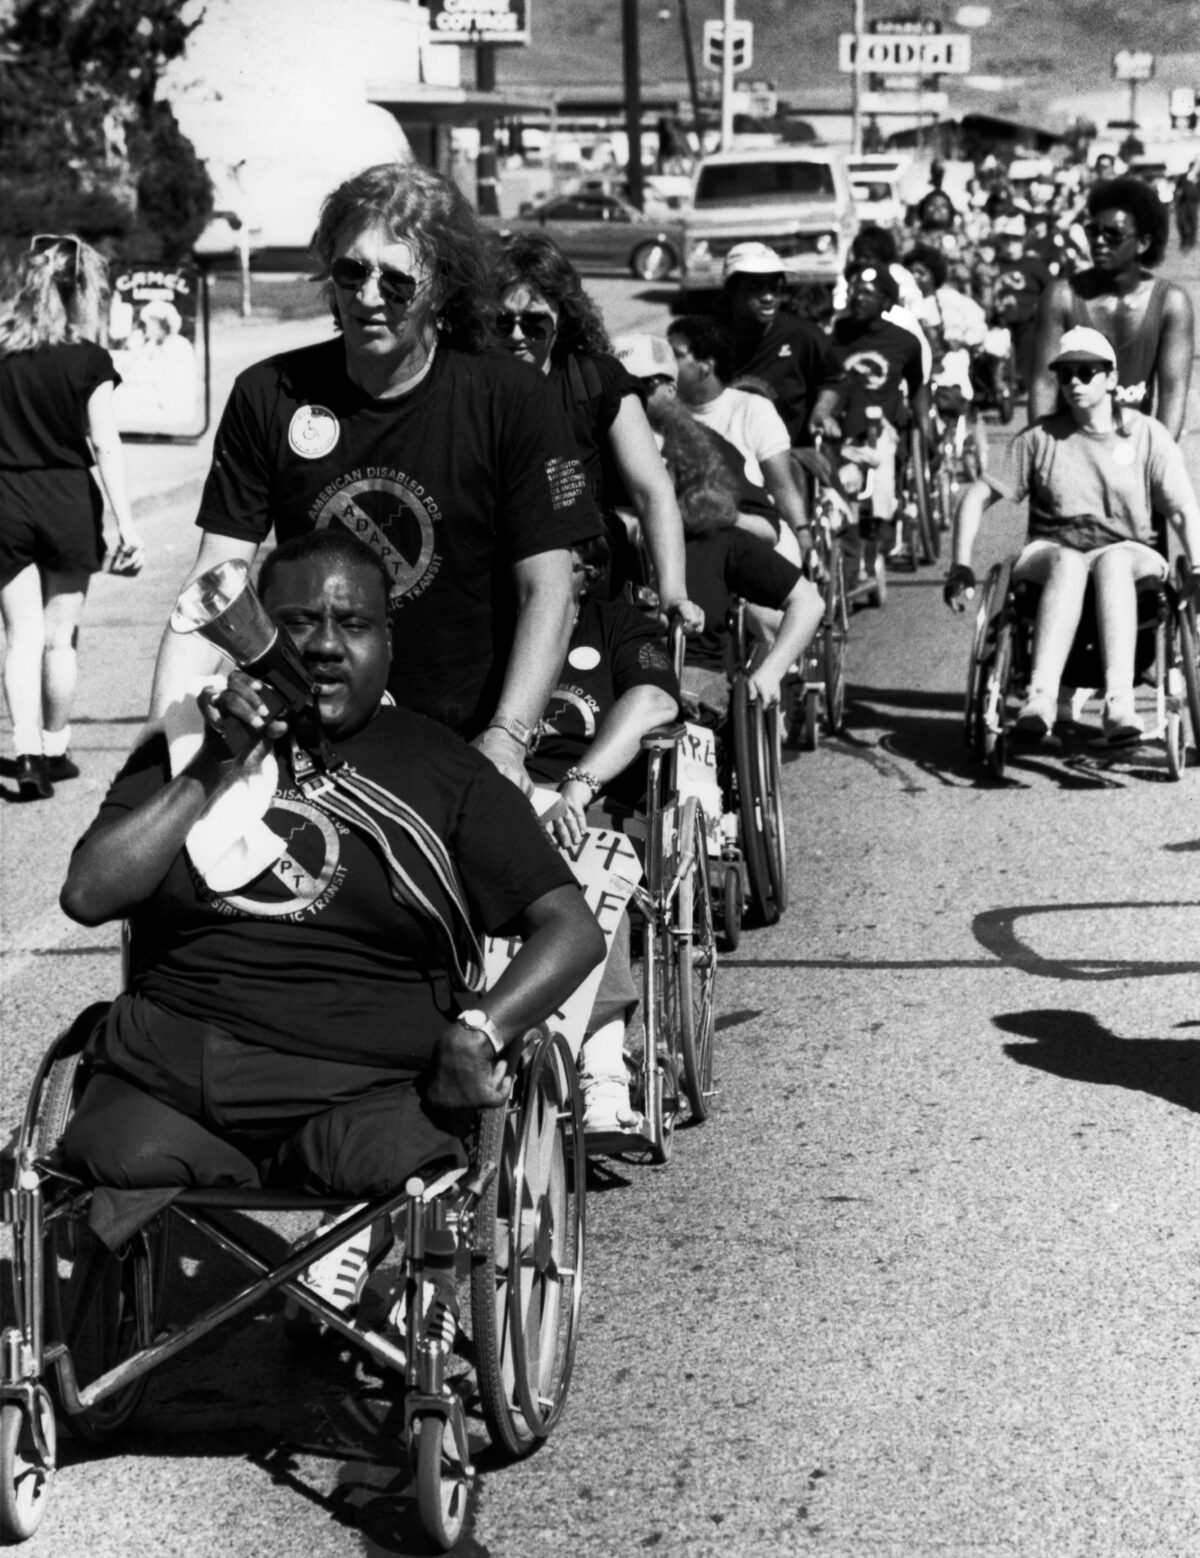 image of disability rights march with black disabled man in wheelchair at from with white man pushing him. There looks to be over 100 people present